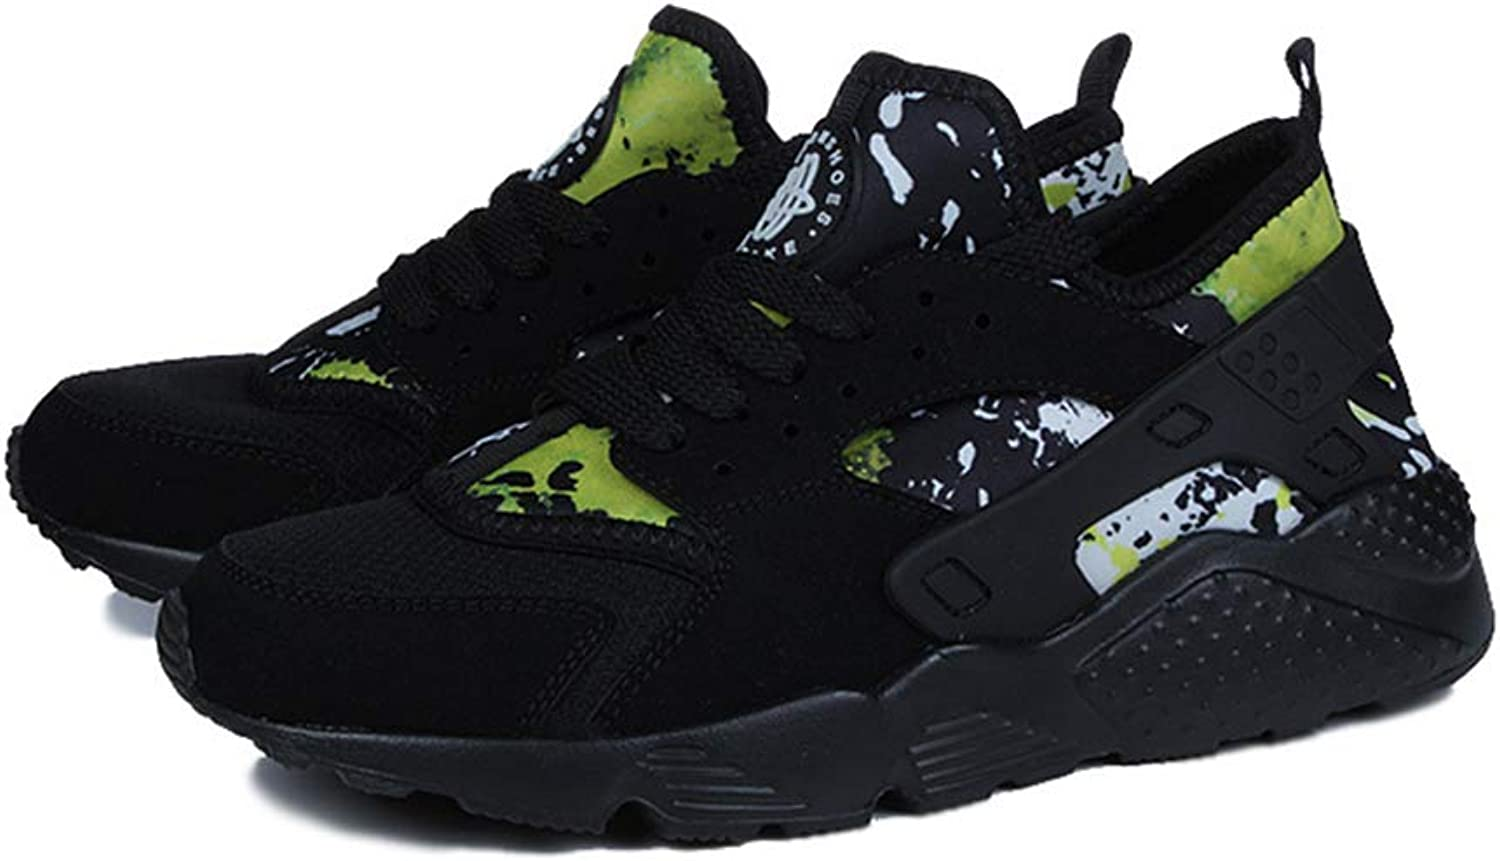 LXYIUN Men's sneakers,Fashion Camouflage Lightweight Running shoes,Black,40